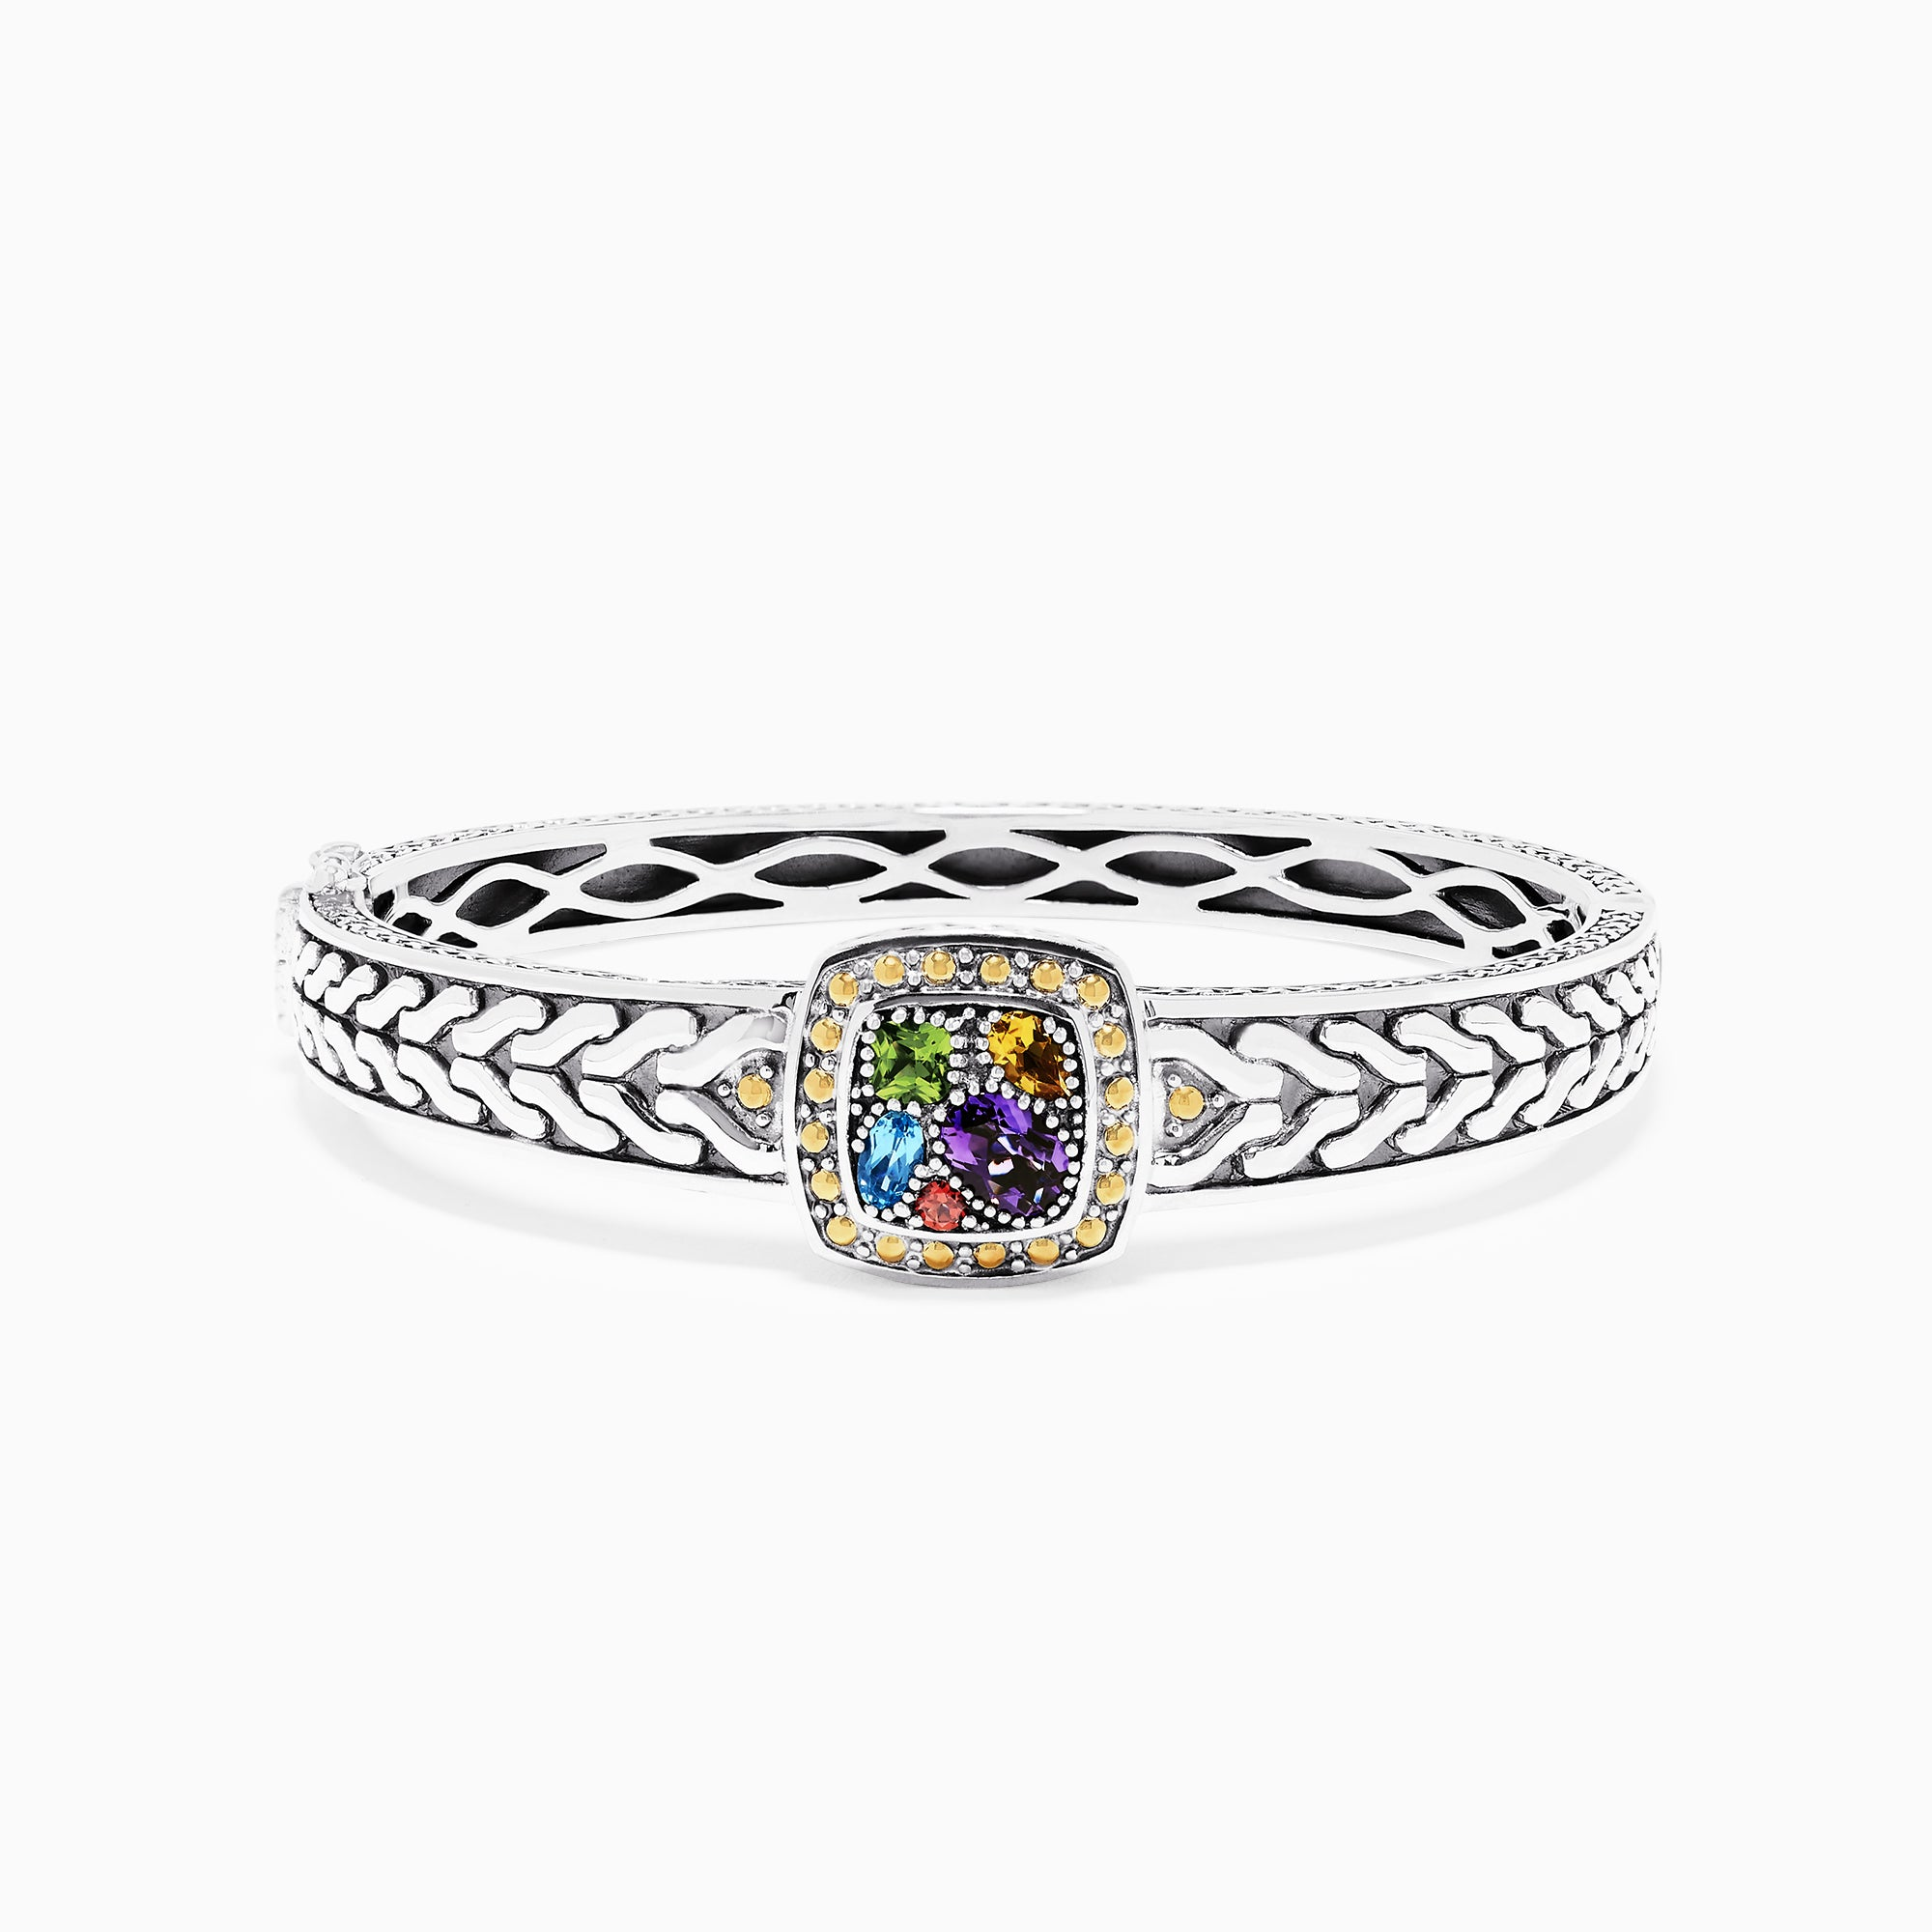 Effy 925 Sterling Silver & 18K Gold Accent Multi Gemstone Bangle, 1.59 TCW